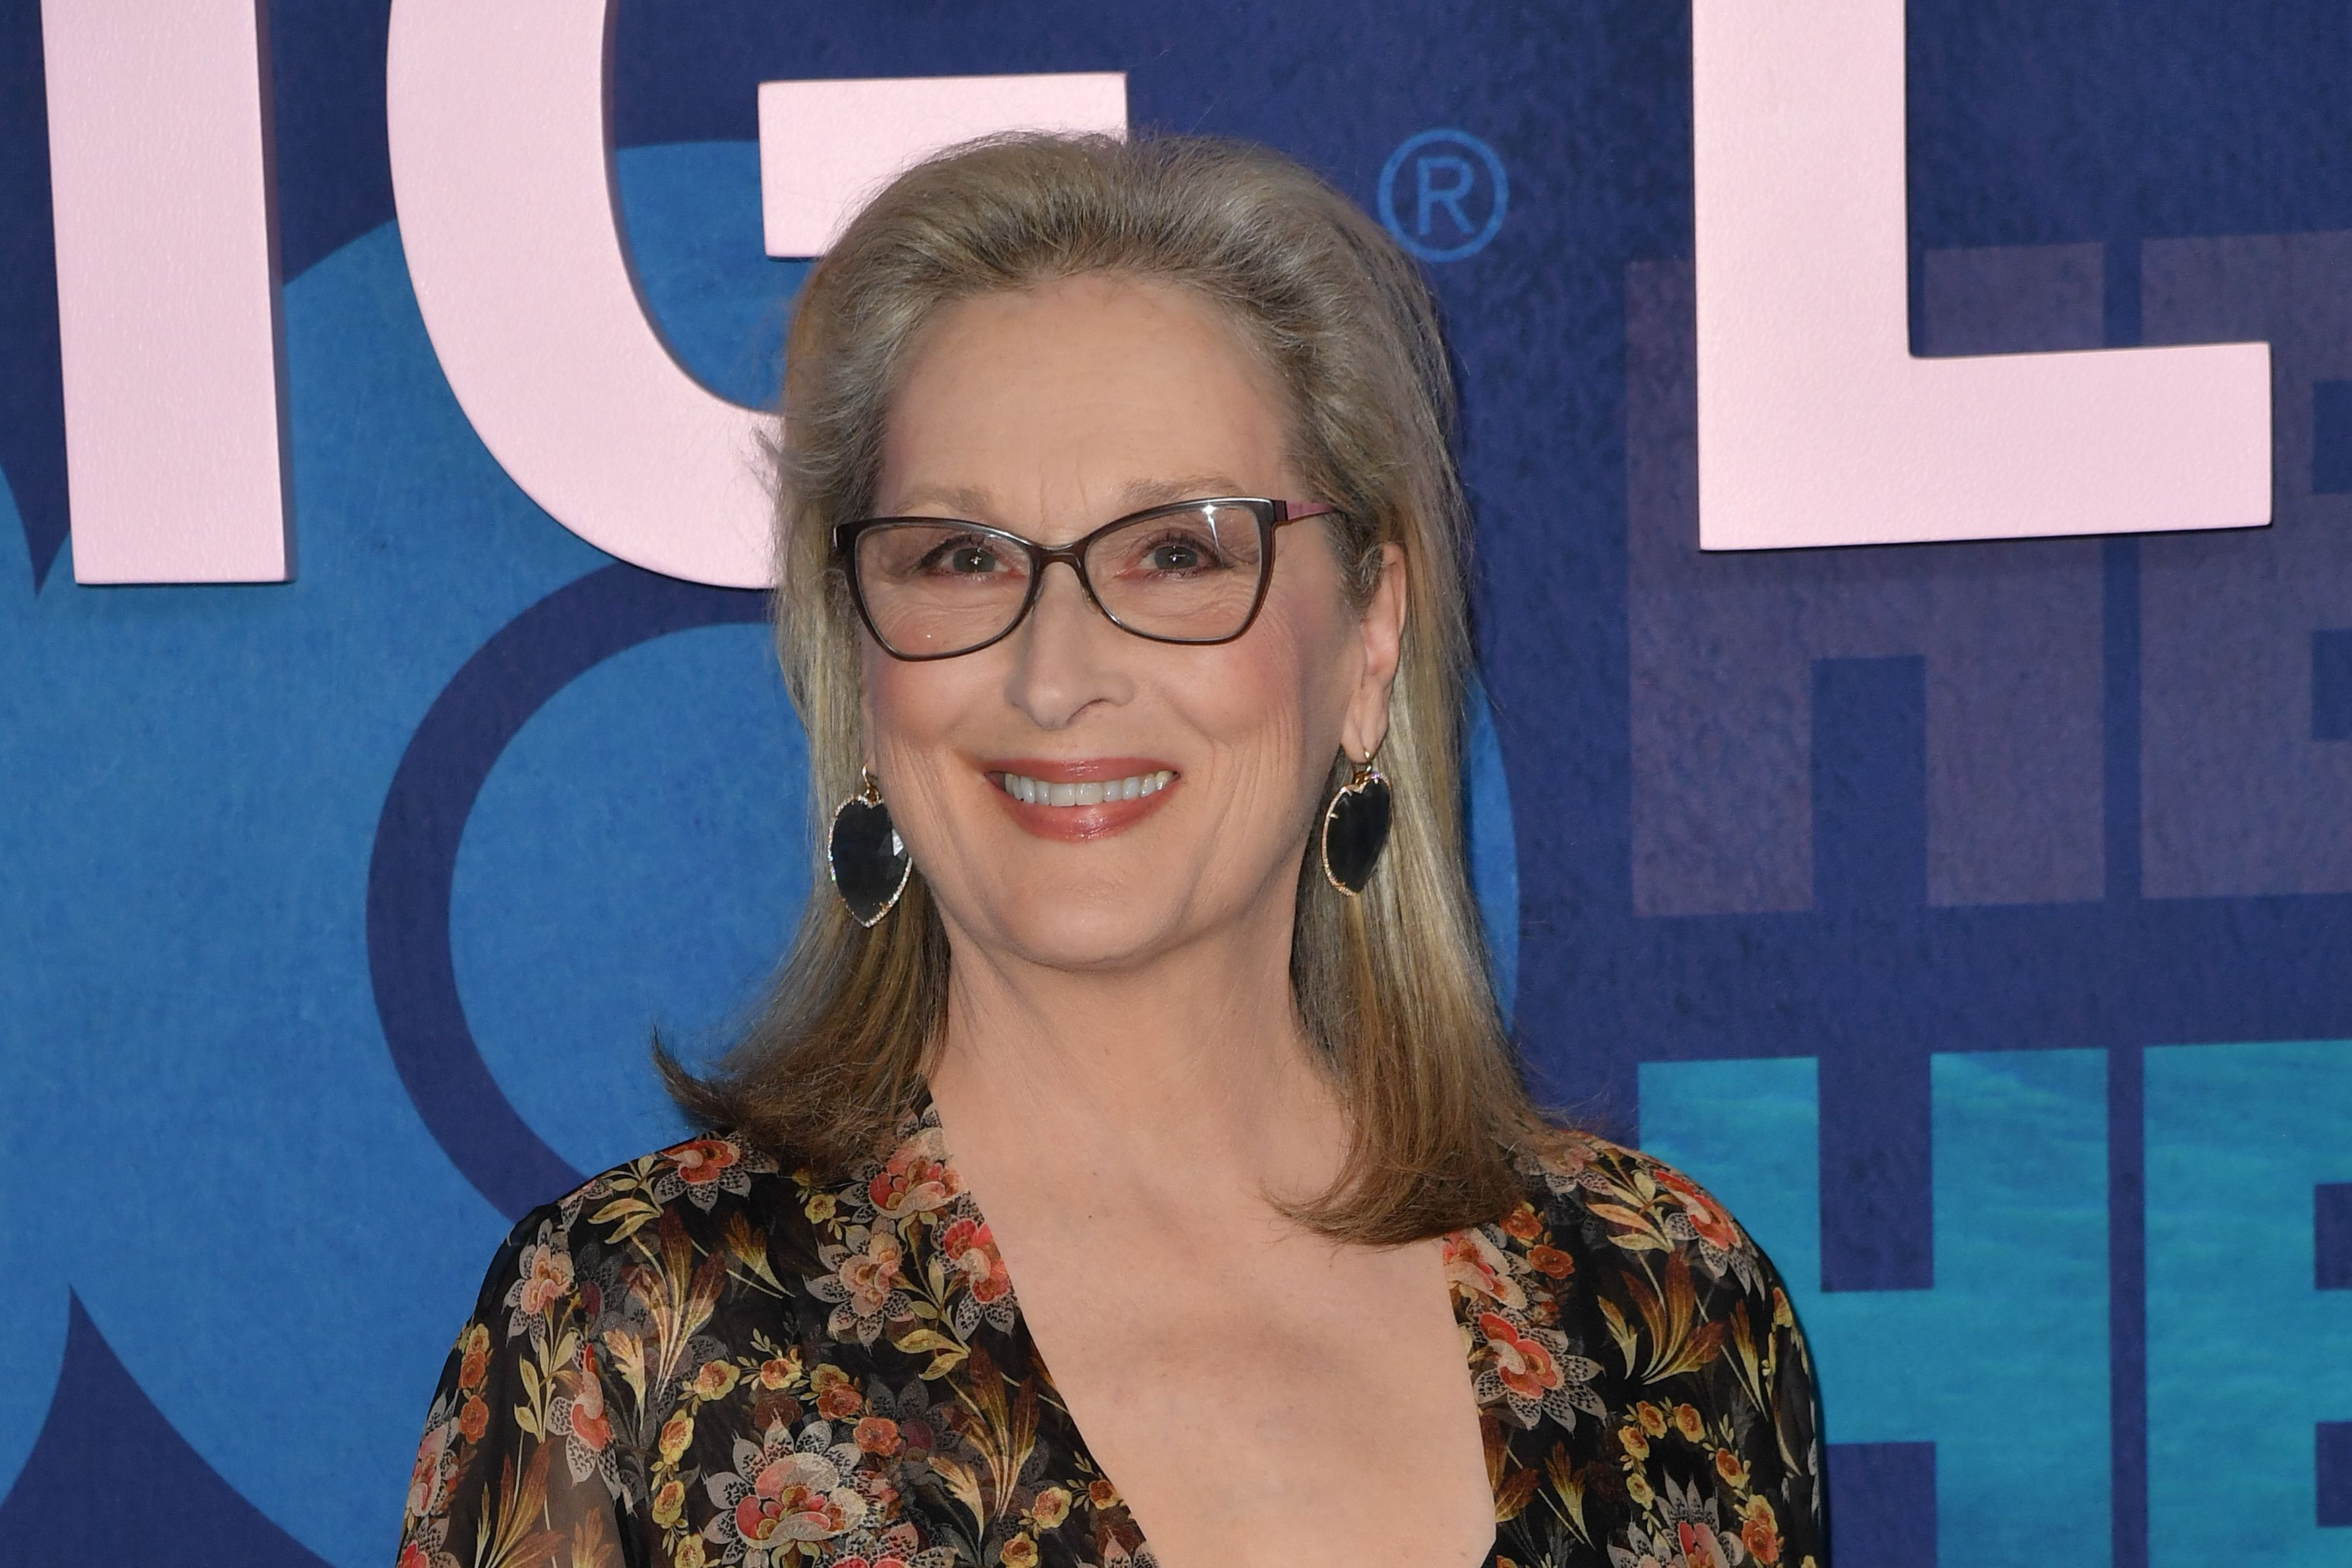 Meryl Streep protagonizará 'Let Them All Talk' en HBO Max